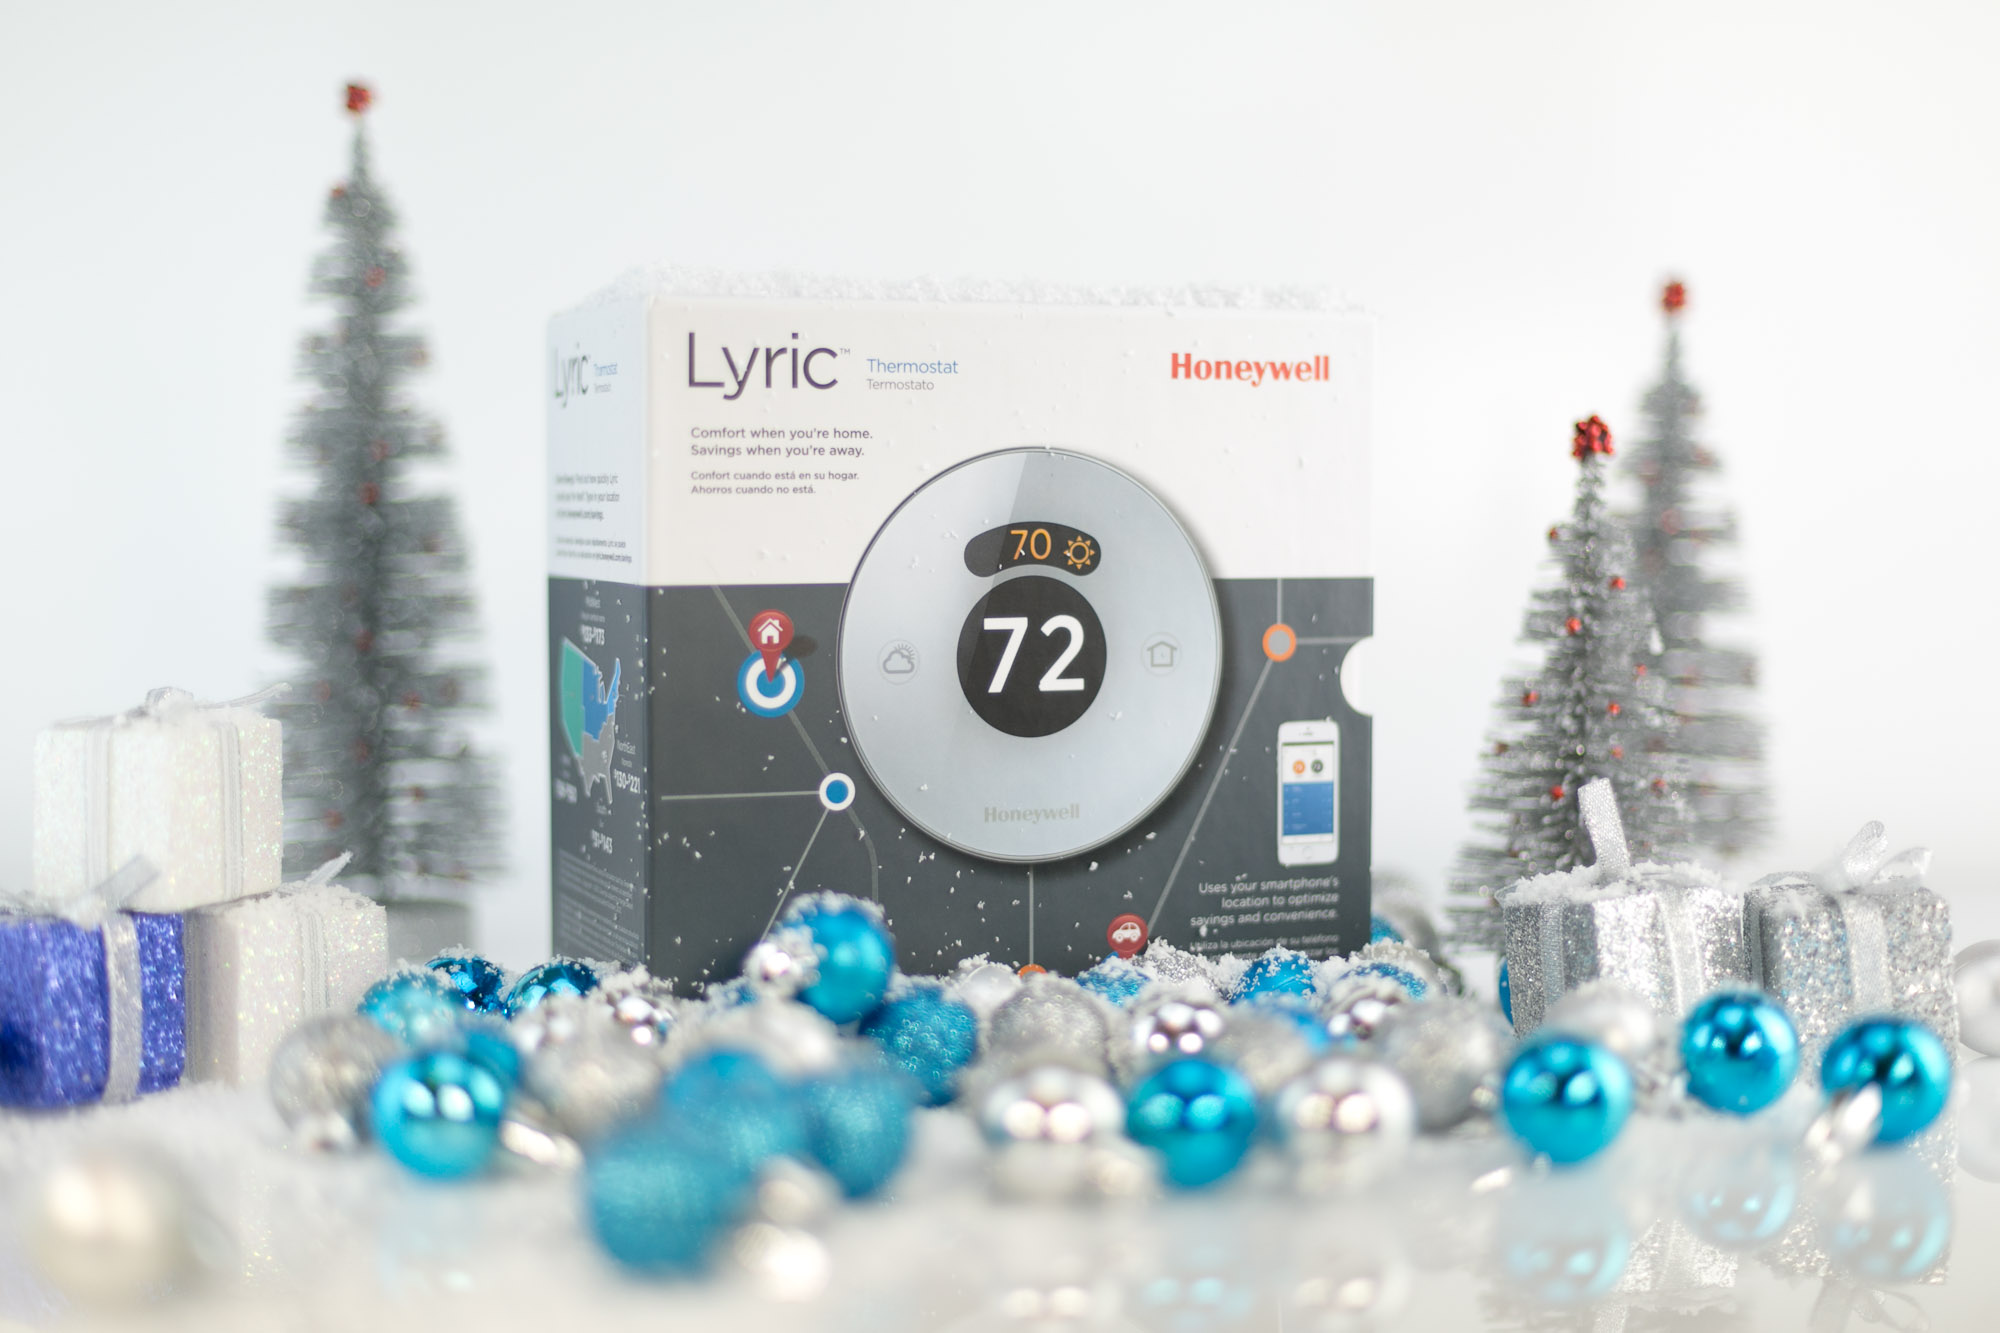 honeywell_holiday2014v1-9675